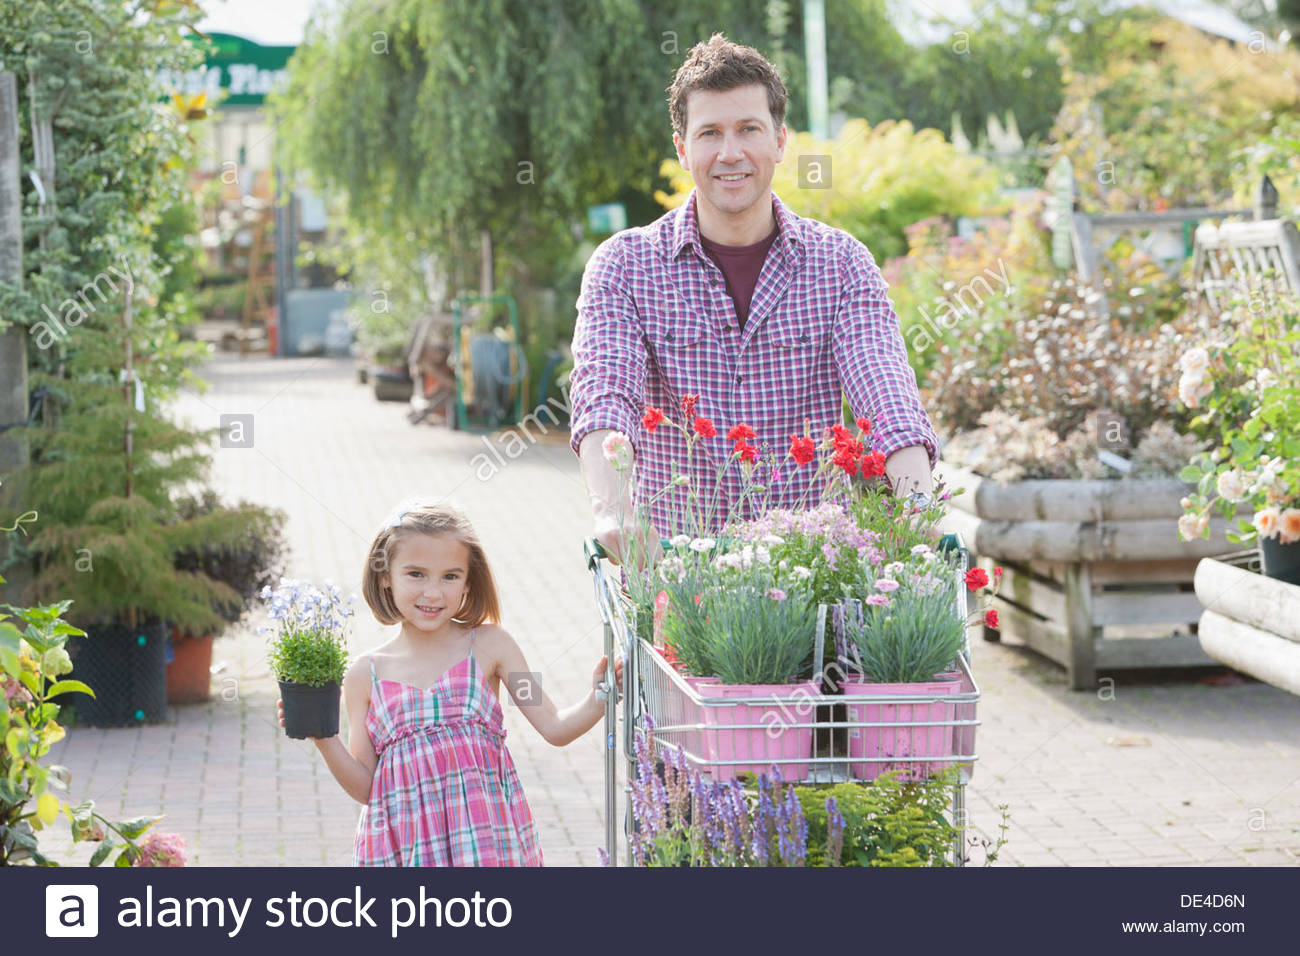 Father and daughter shopping together in nursery - Stock Image